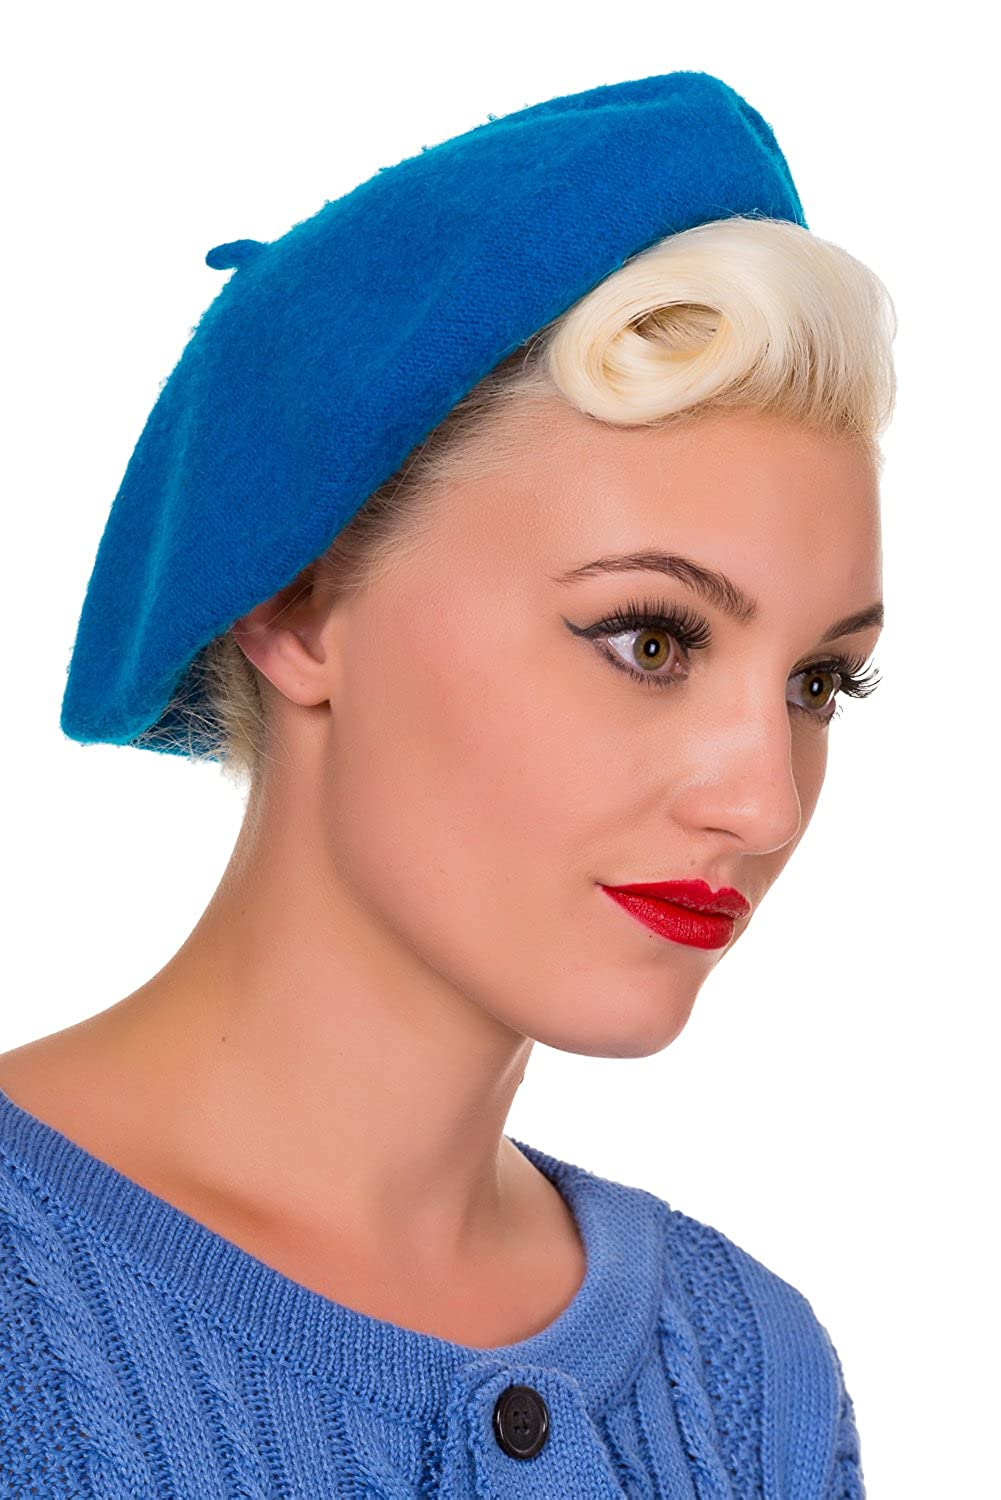 Tea Party Hats – Victorian to 1950s Banned Claire Vintage Retro Beret Hat $15.95 AT vintagedancer.com